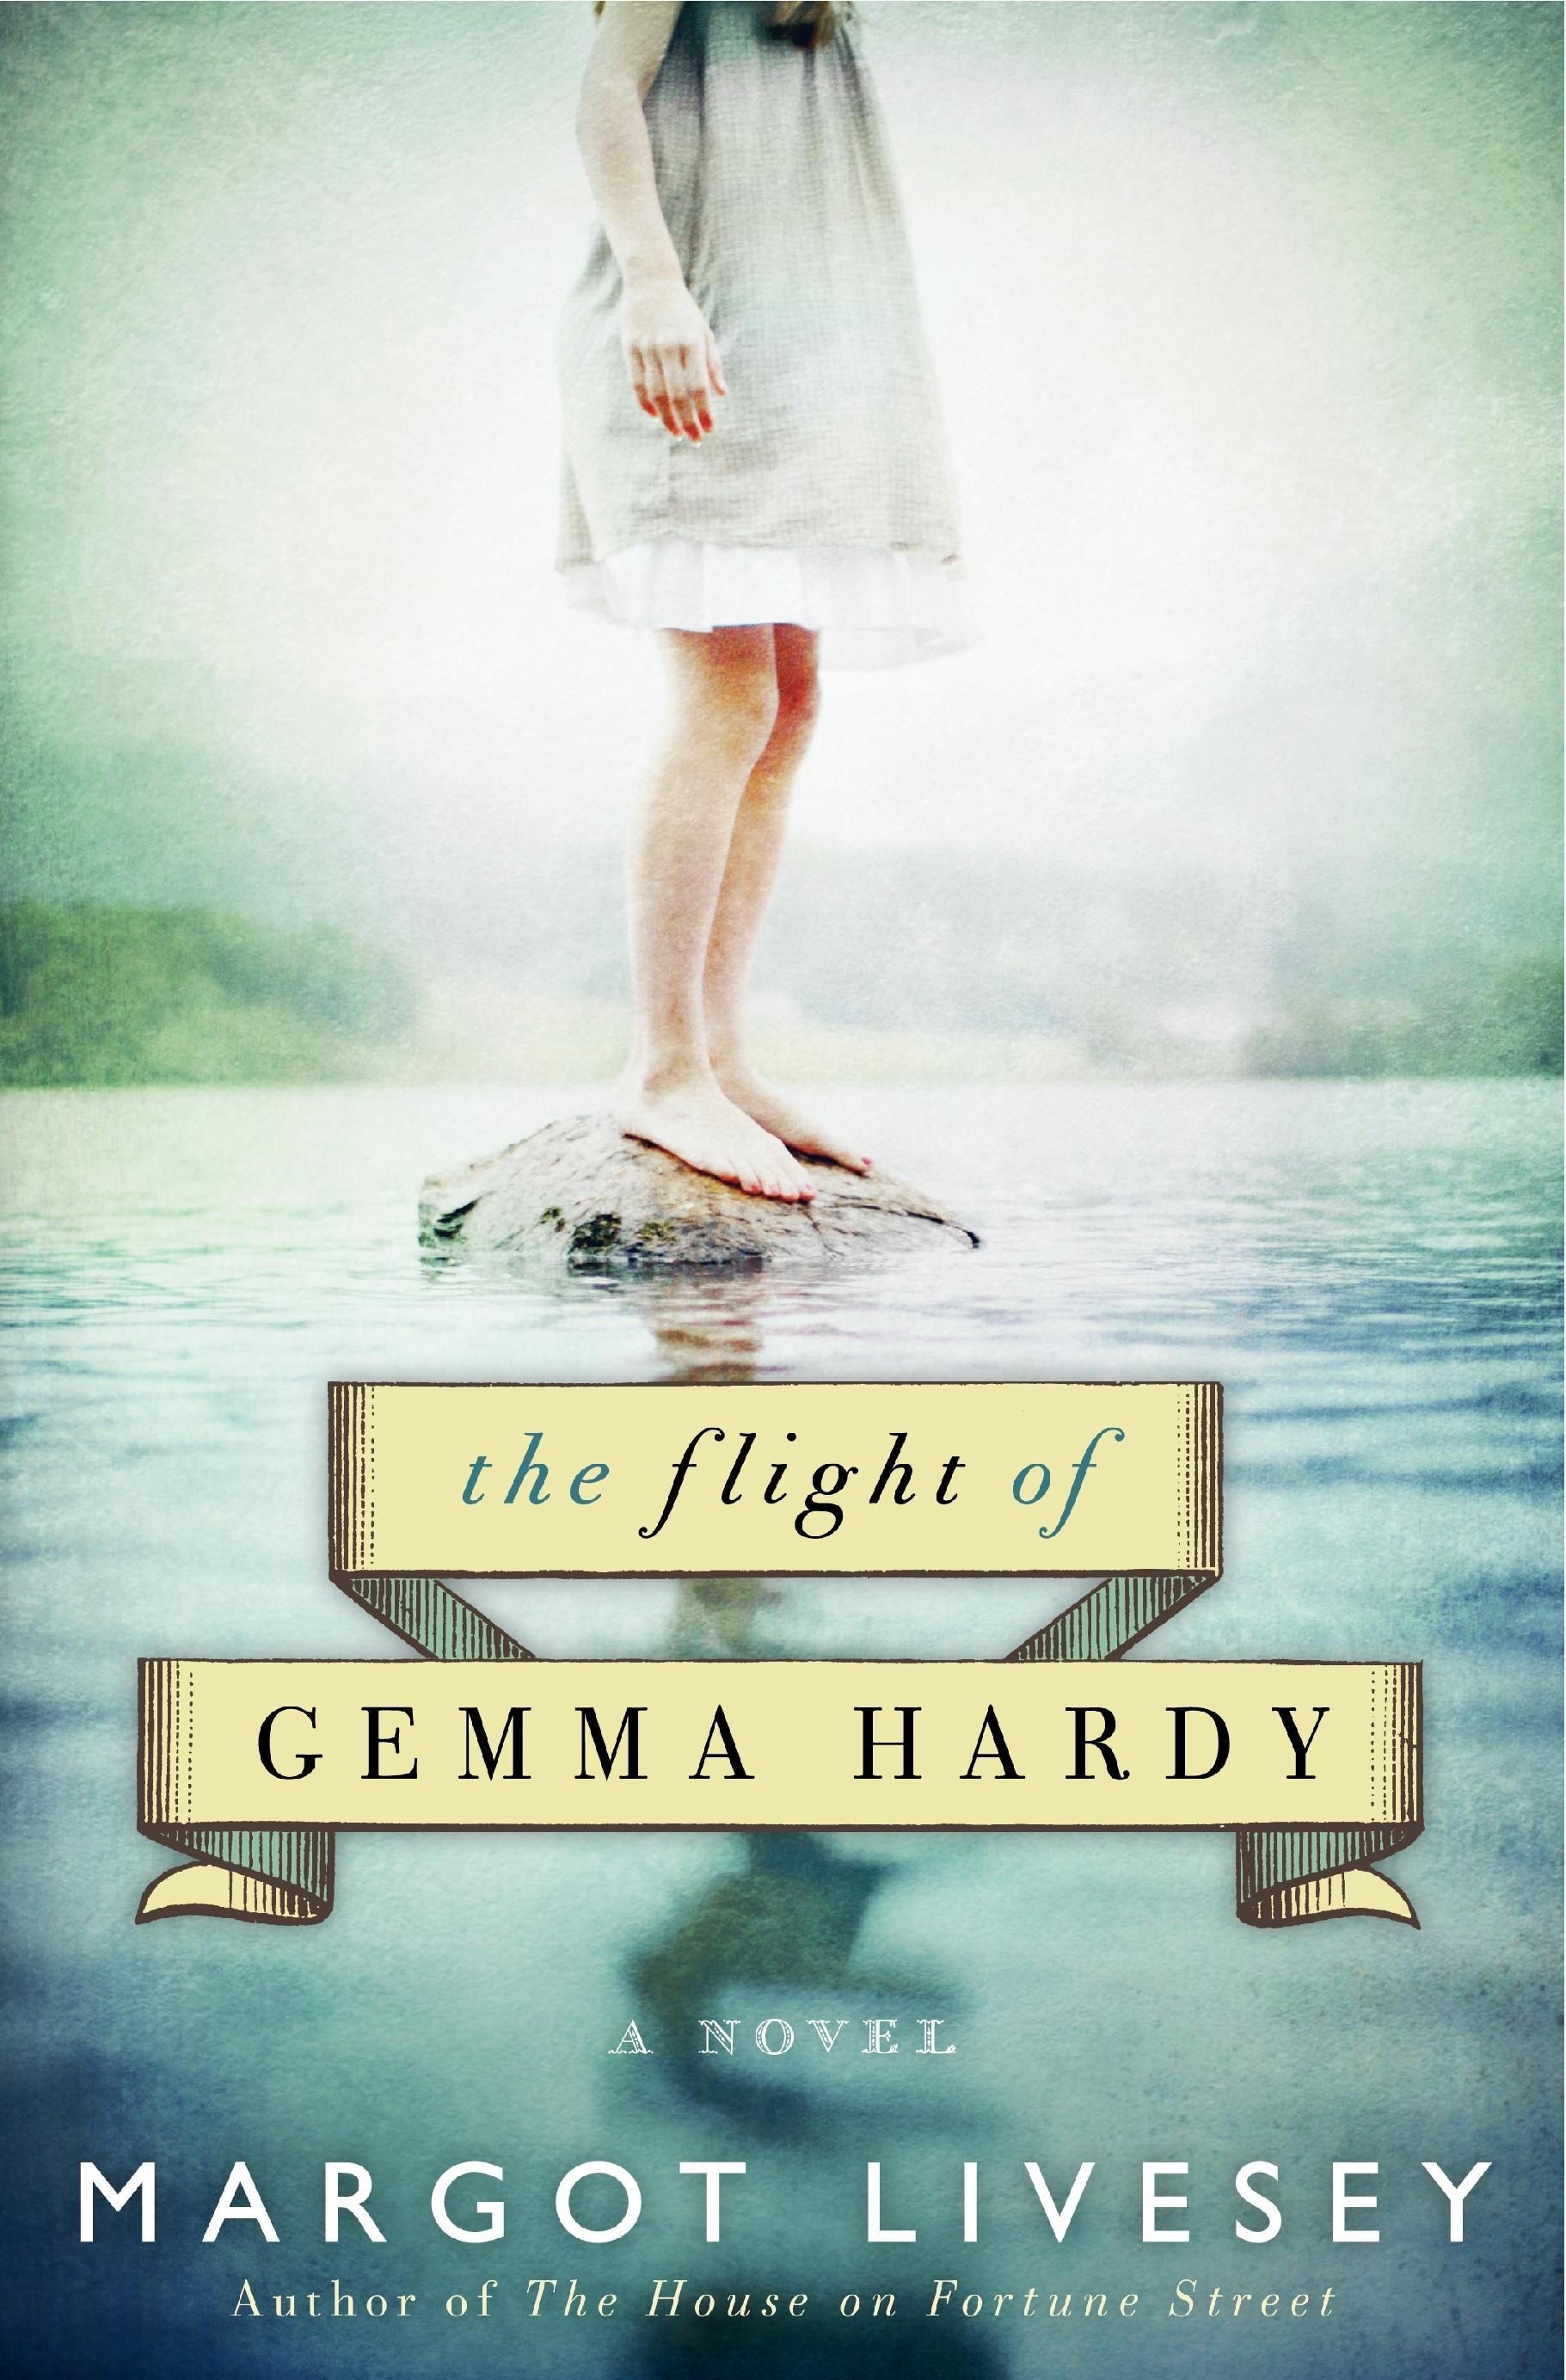 Flight of Gemmy Hardy